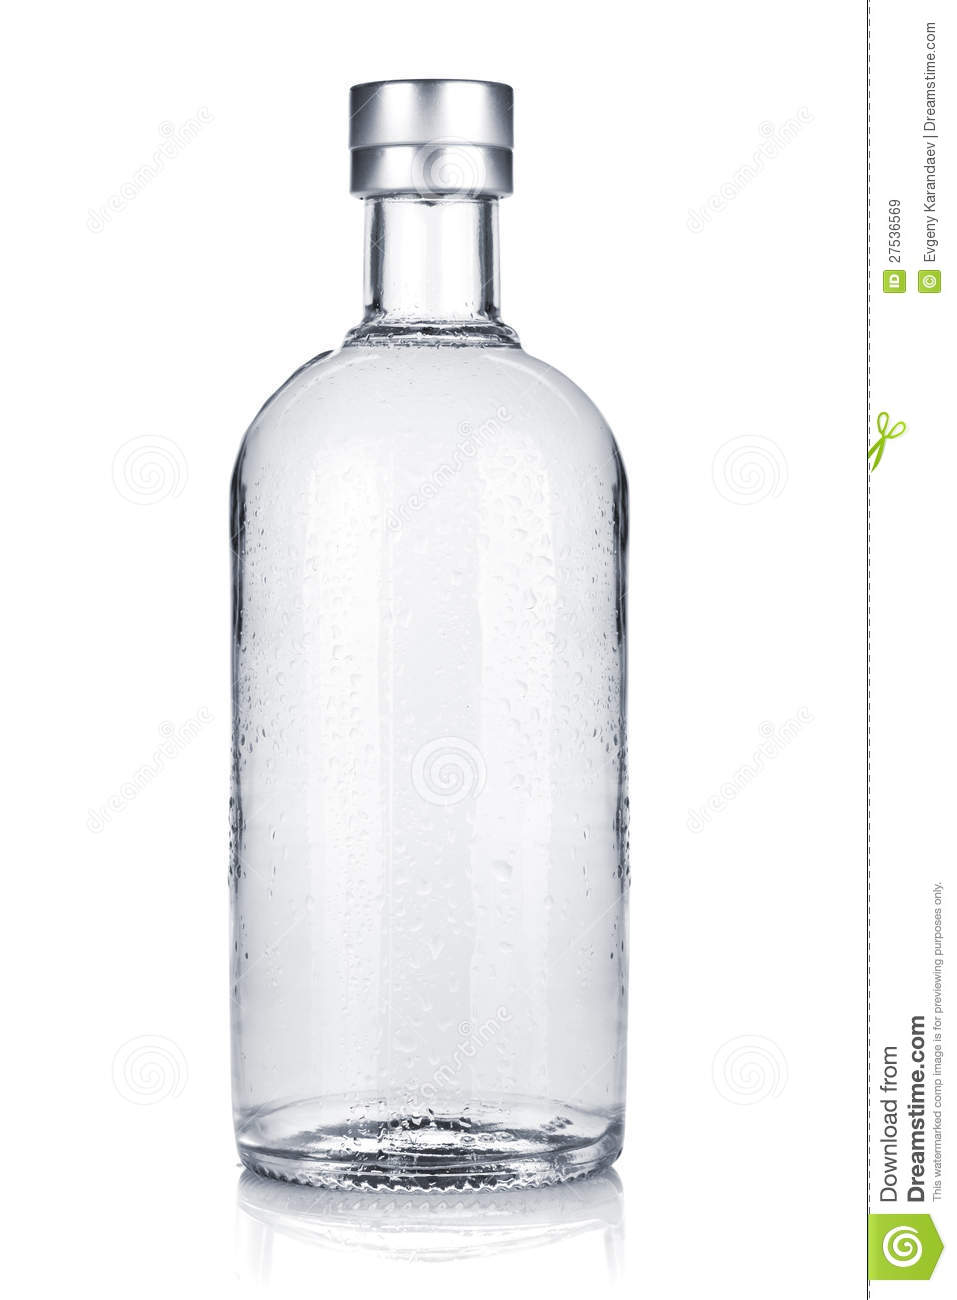 Bottle Of Russian Vodka Royalty Free Stock Images  Image